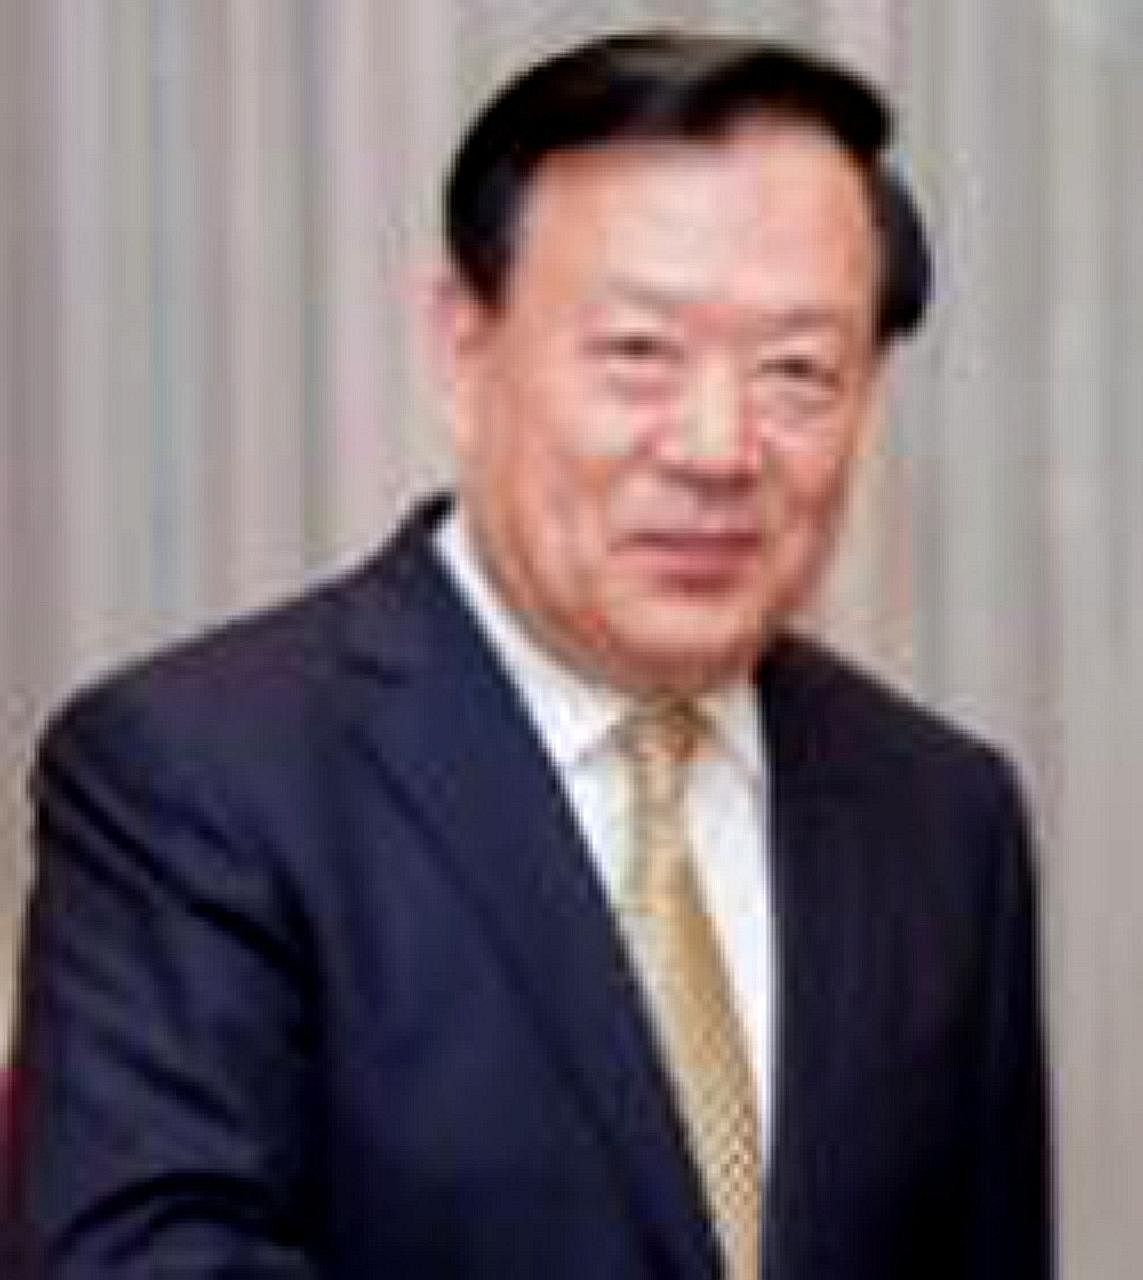 Mr Xia Baolong will likely be the head of the powerful Central Politics and Legal Affairs Committee.